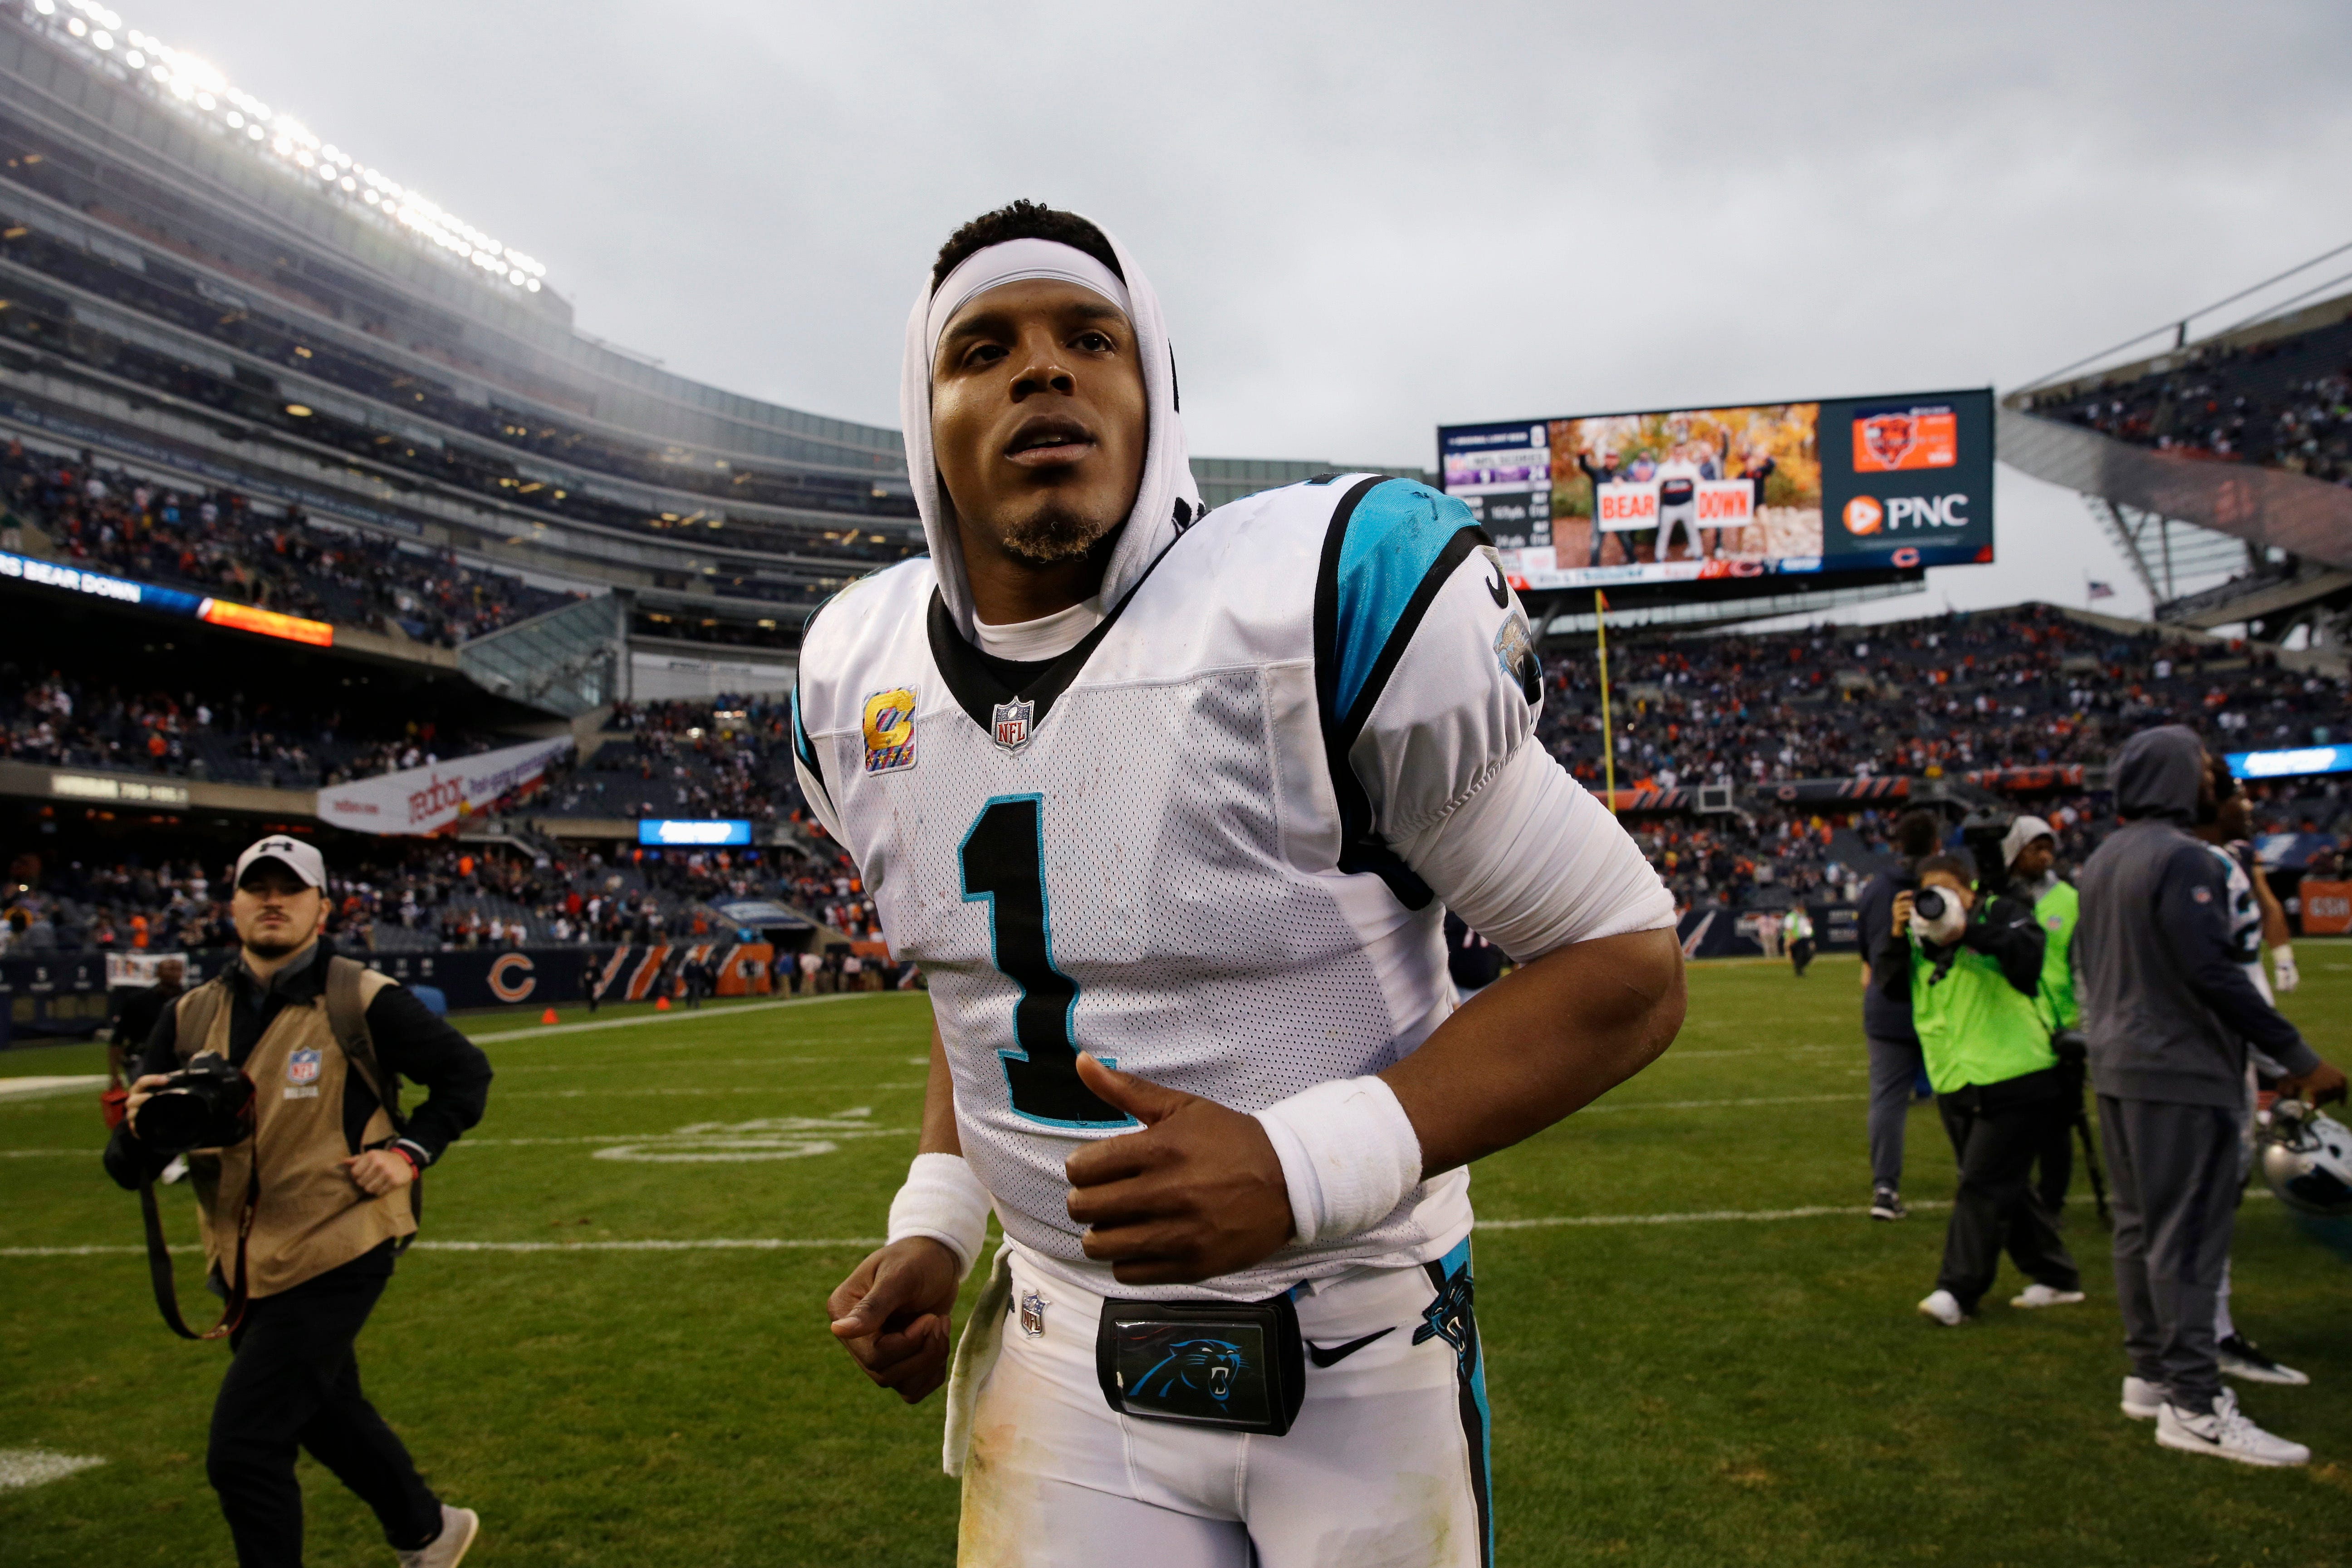 Panthers QB Cam Newton walks out of another news conference